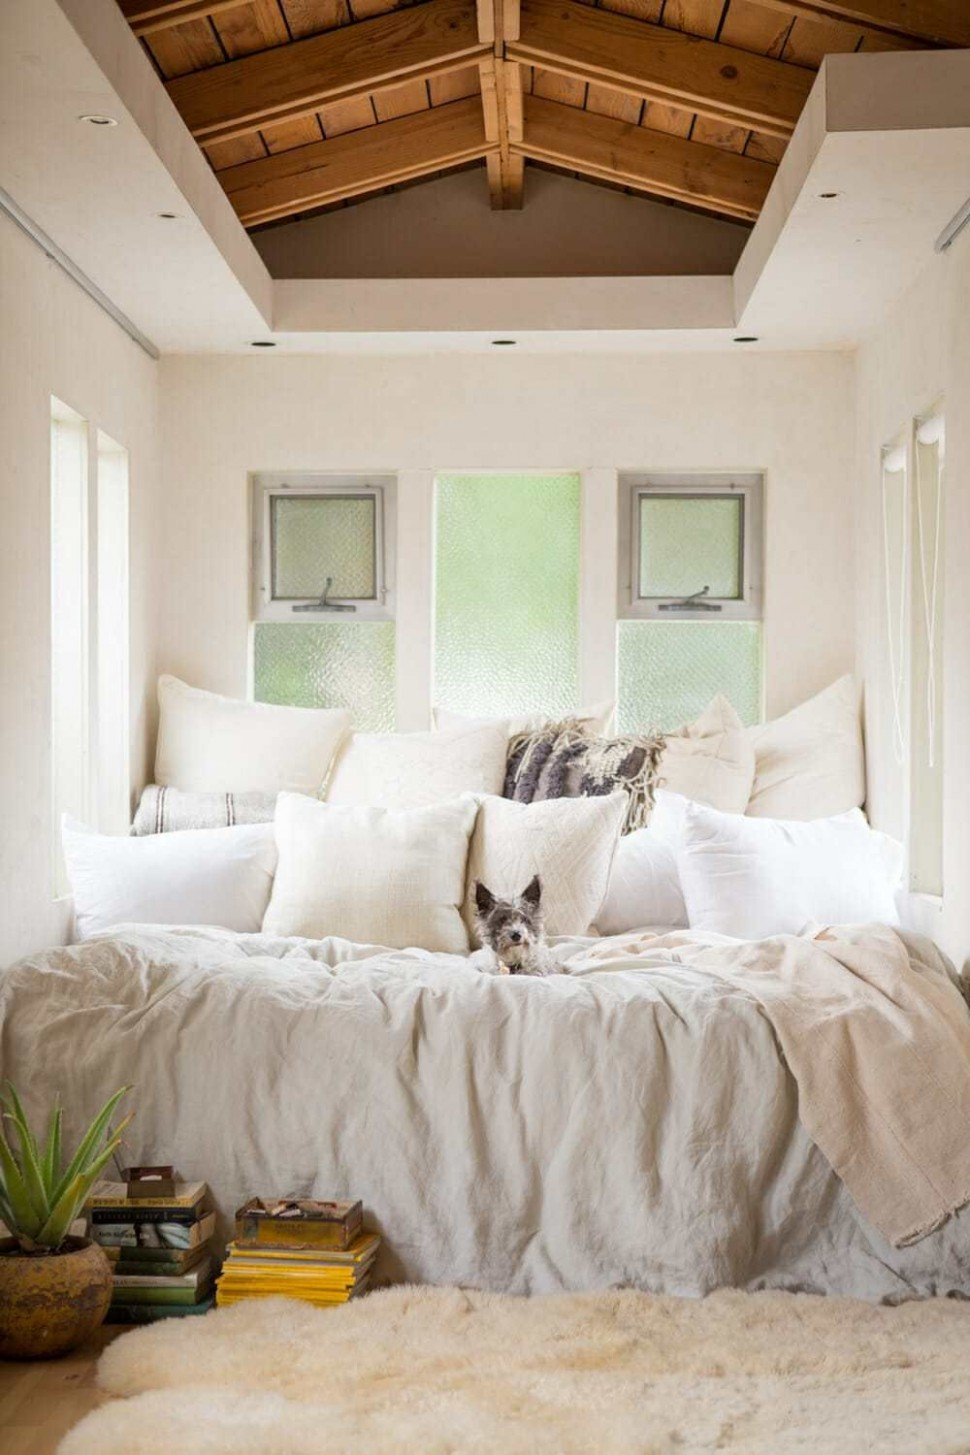 8 Small Bedroom Design Ideas - How to Decorate a Small Bedroom - Cute Bedroom Ideas